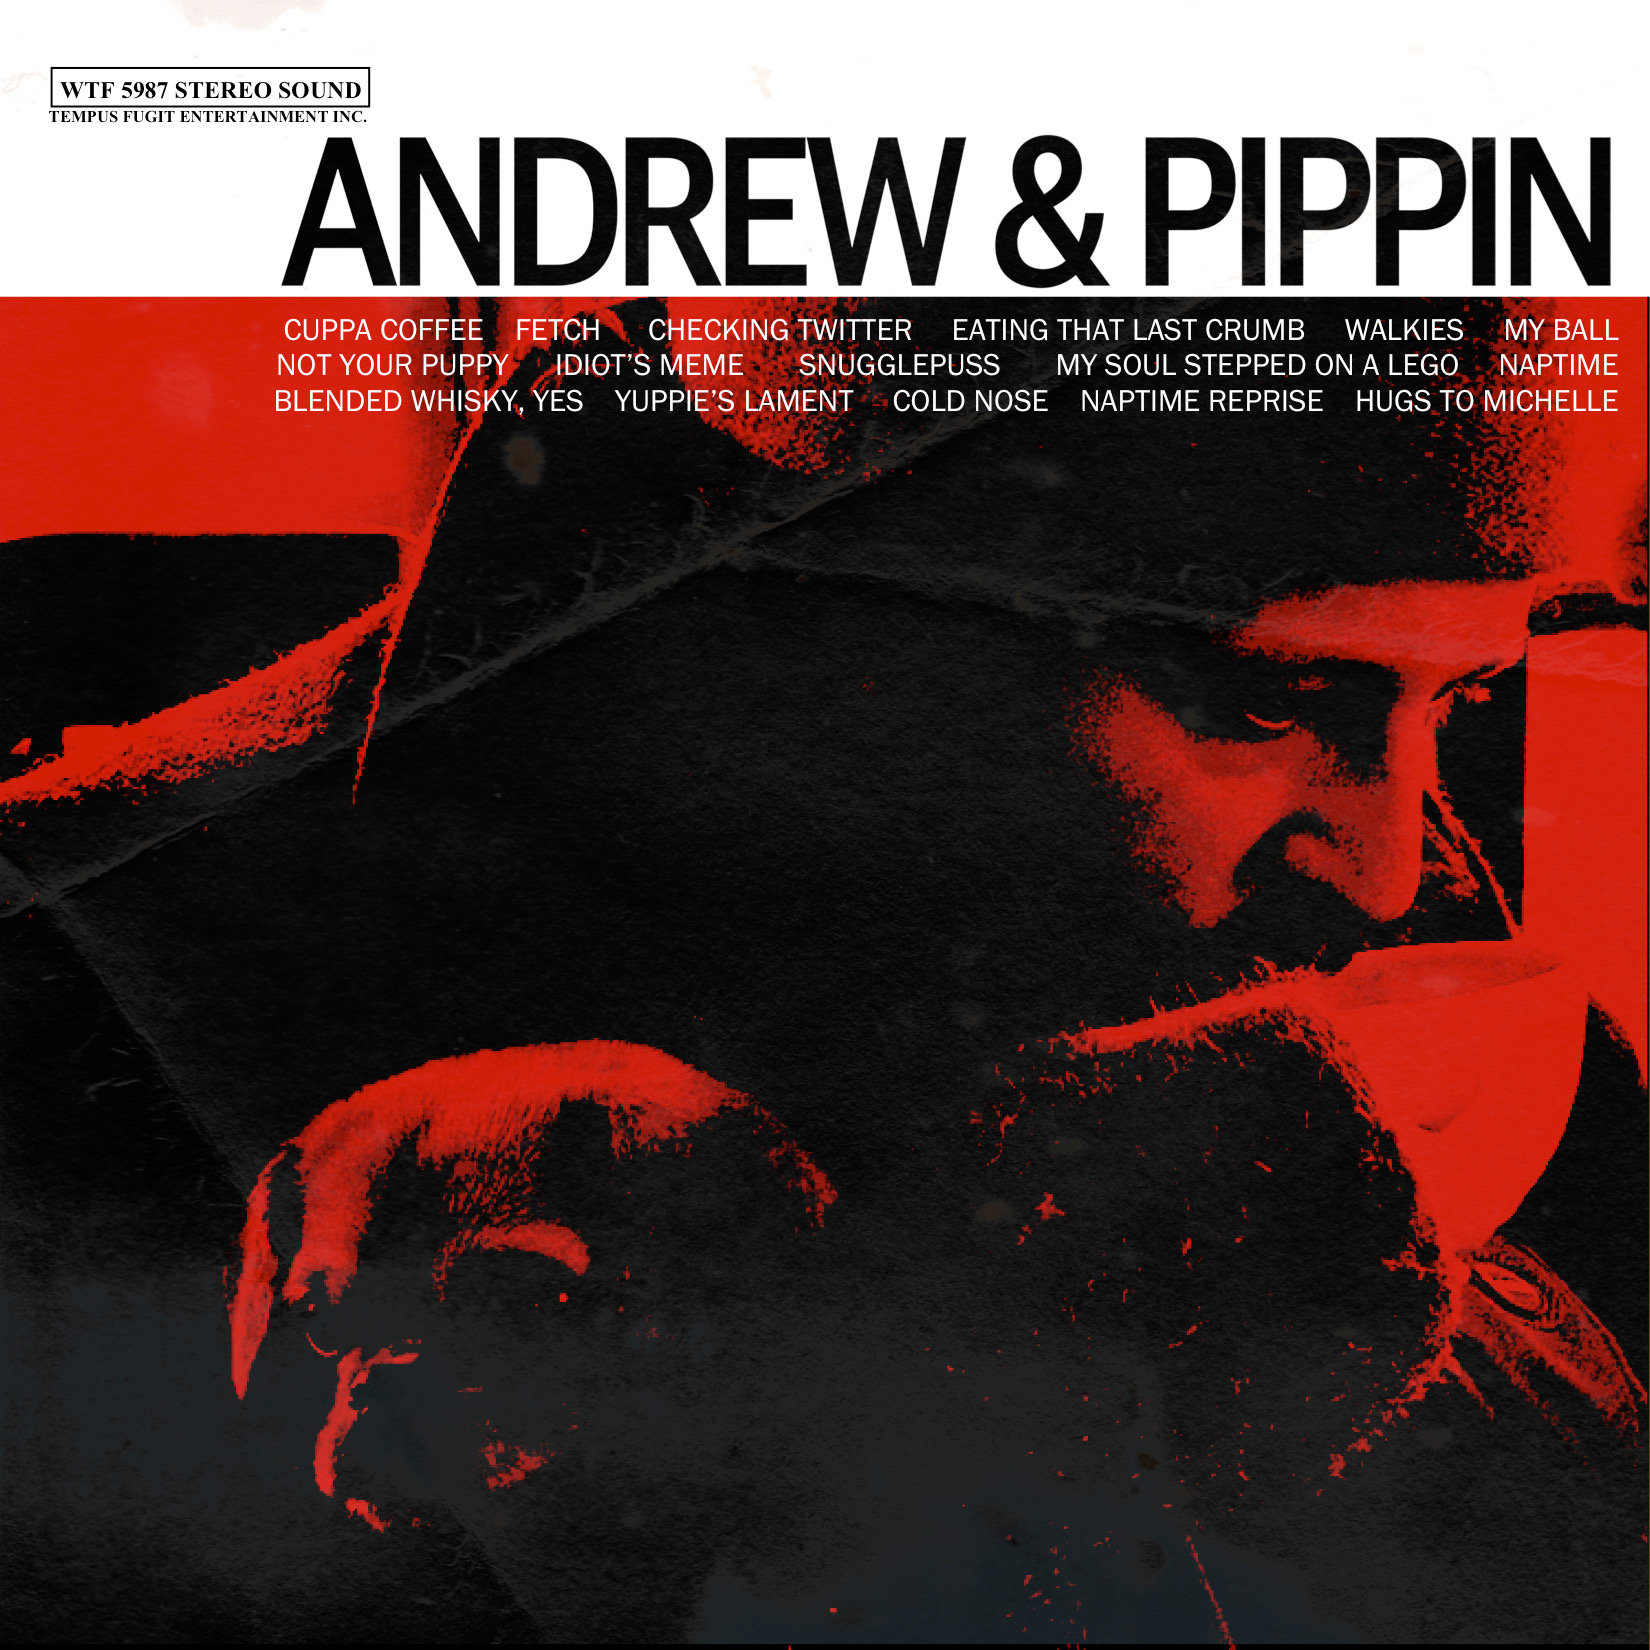 andrew bohrer and his dog pippin bluenote jazz.JPG